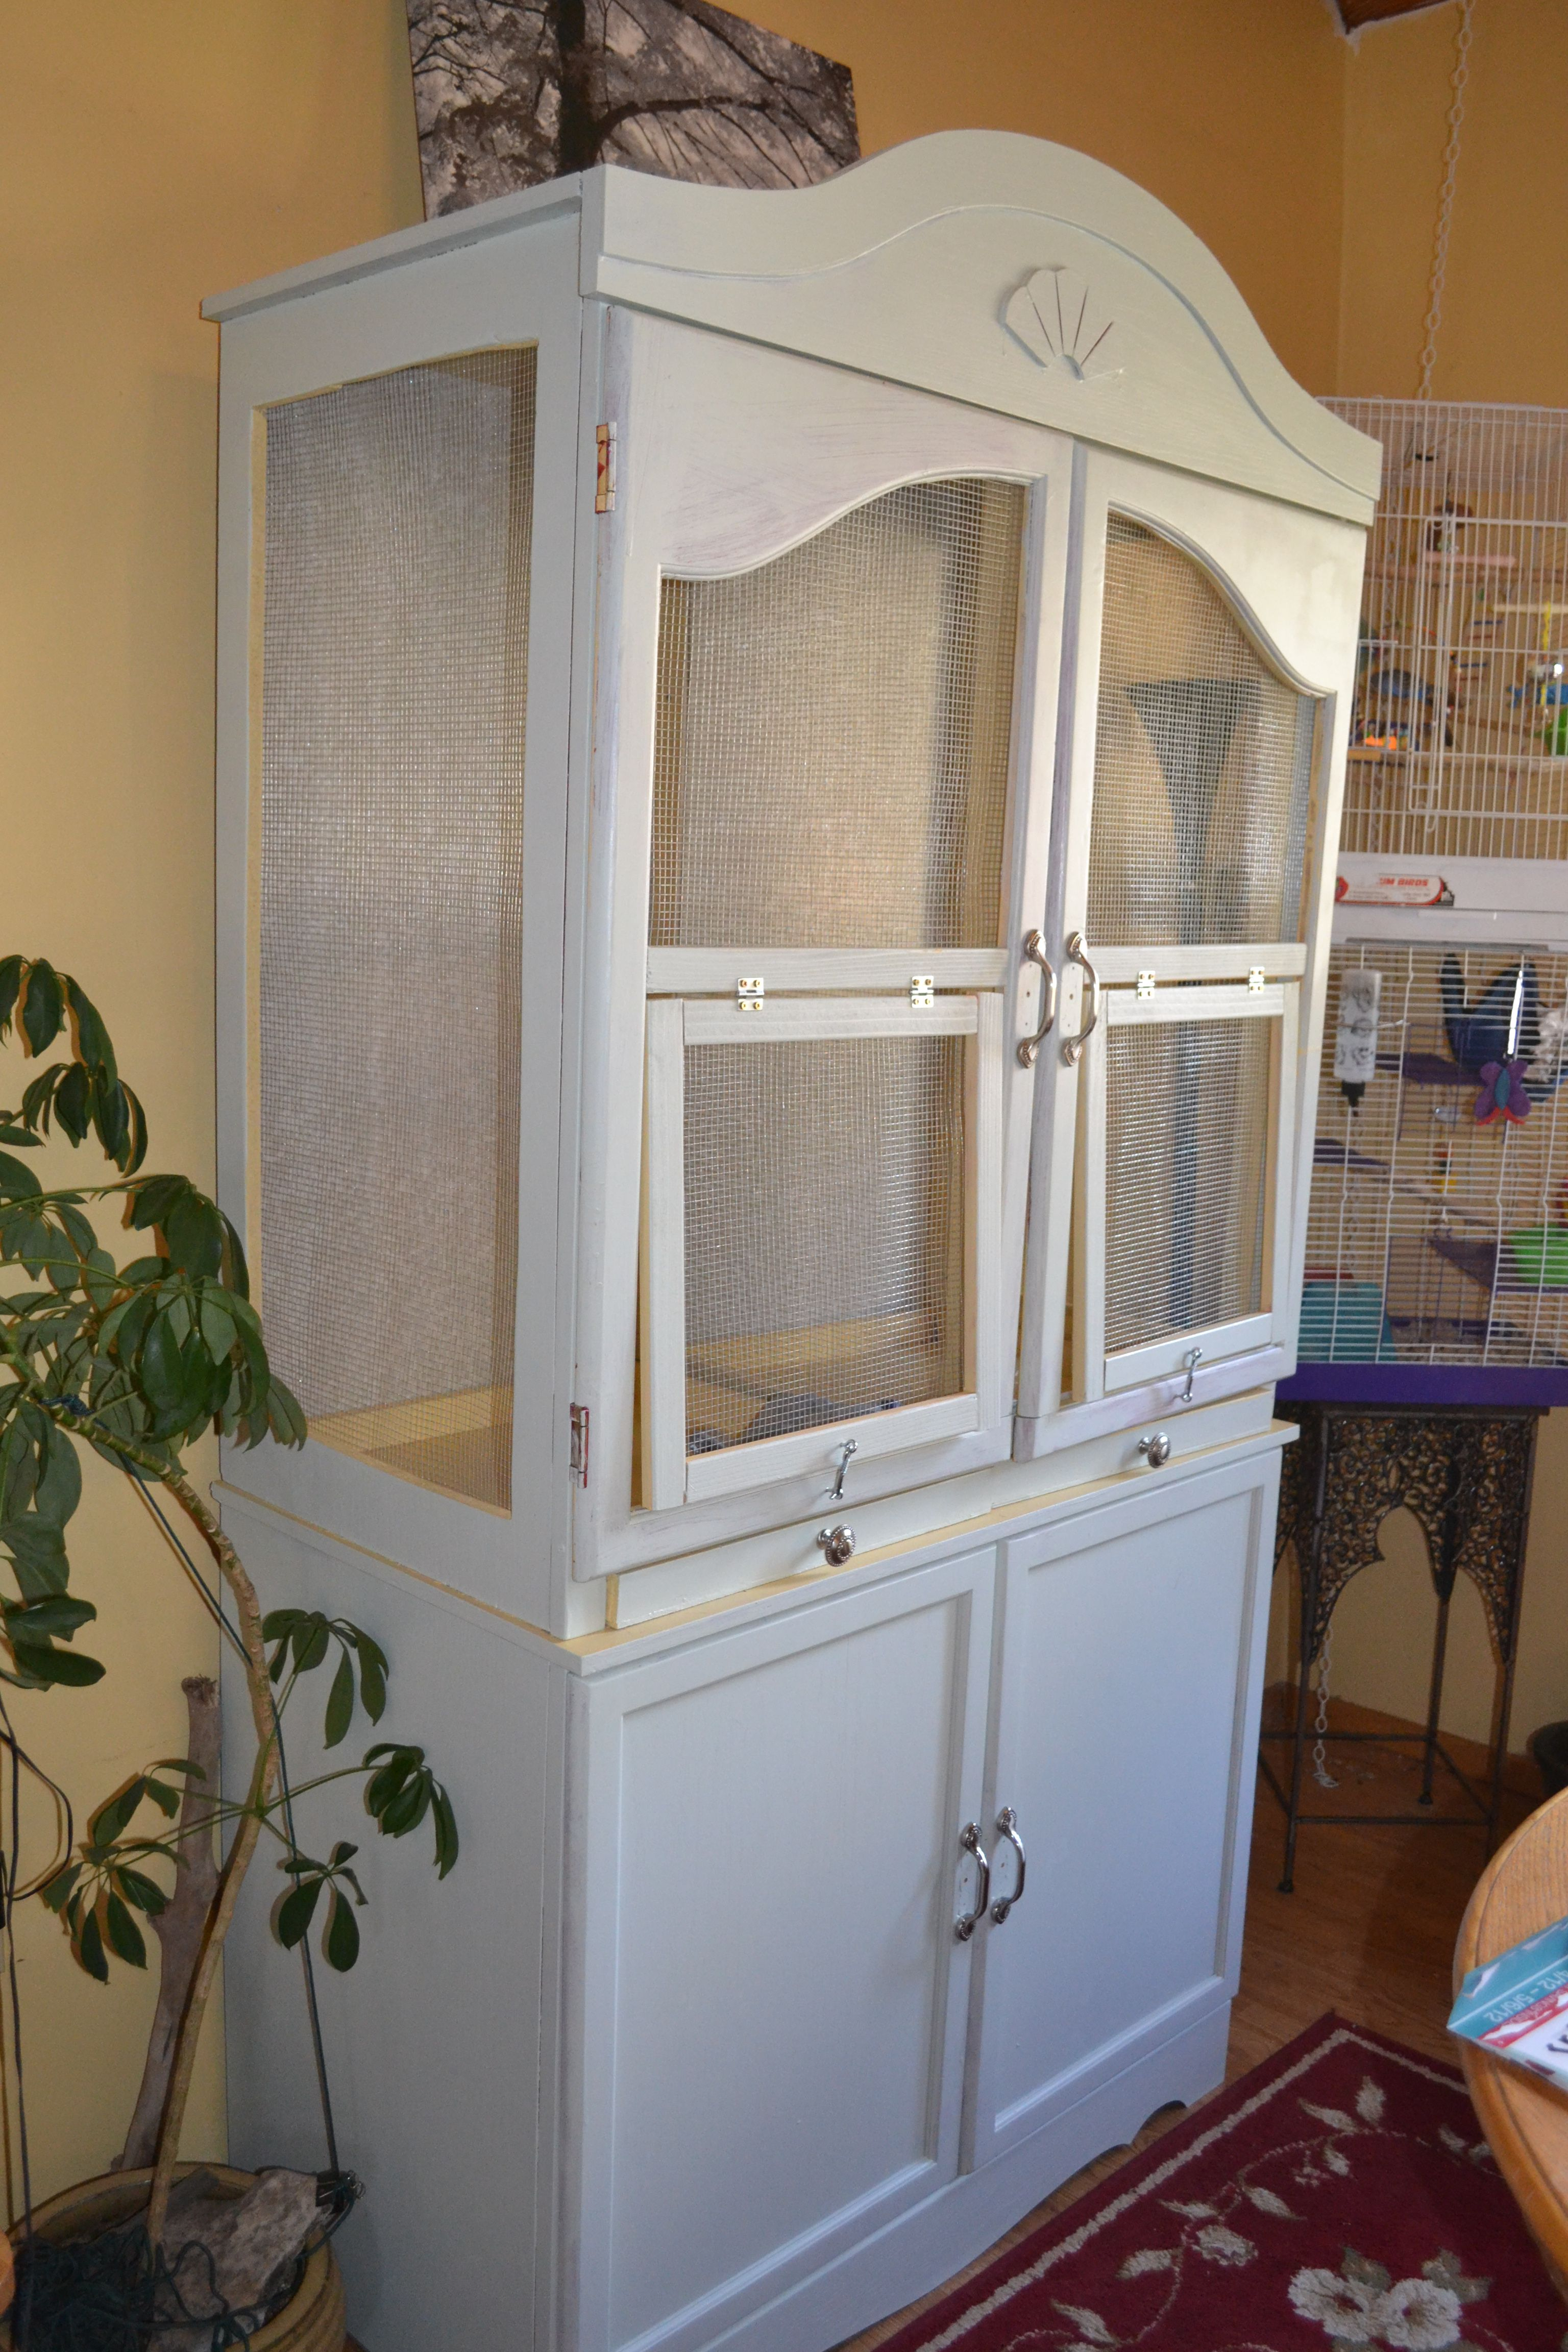 Aviary in the apartment for a dog with their own hands. Keeping dogs at home 2